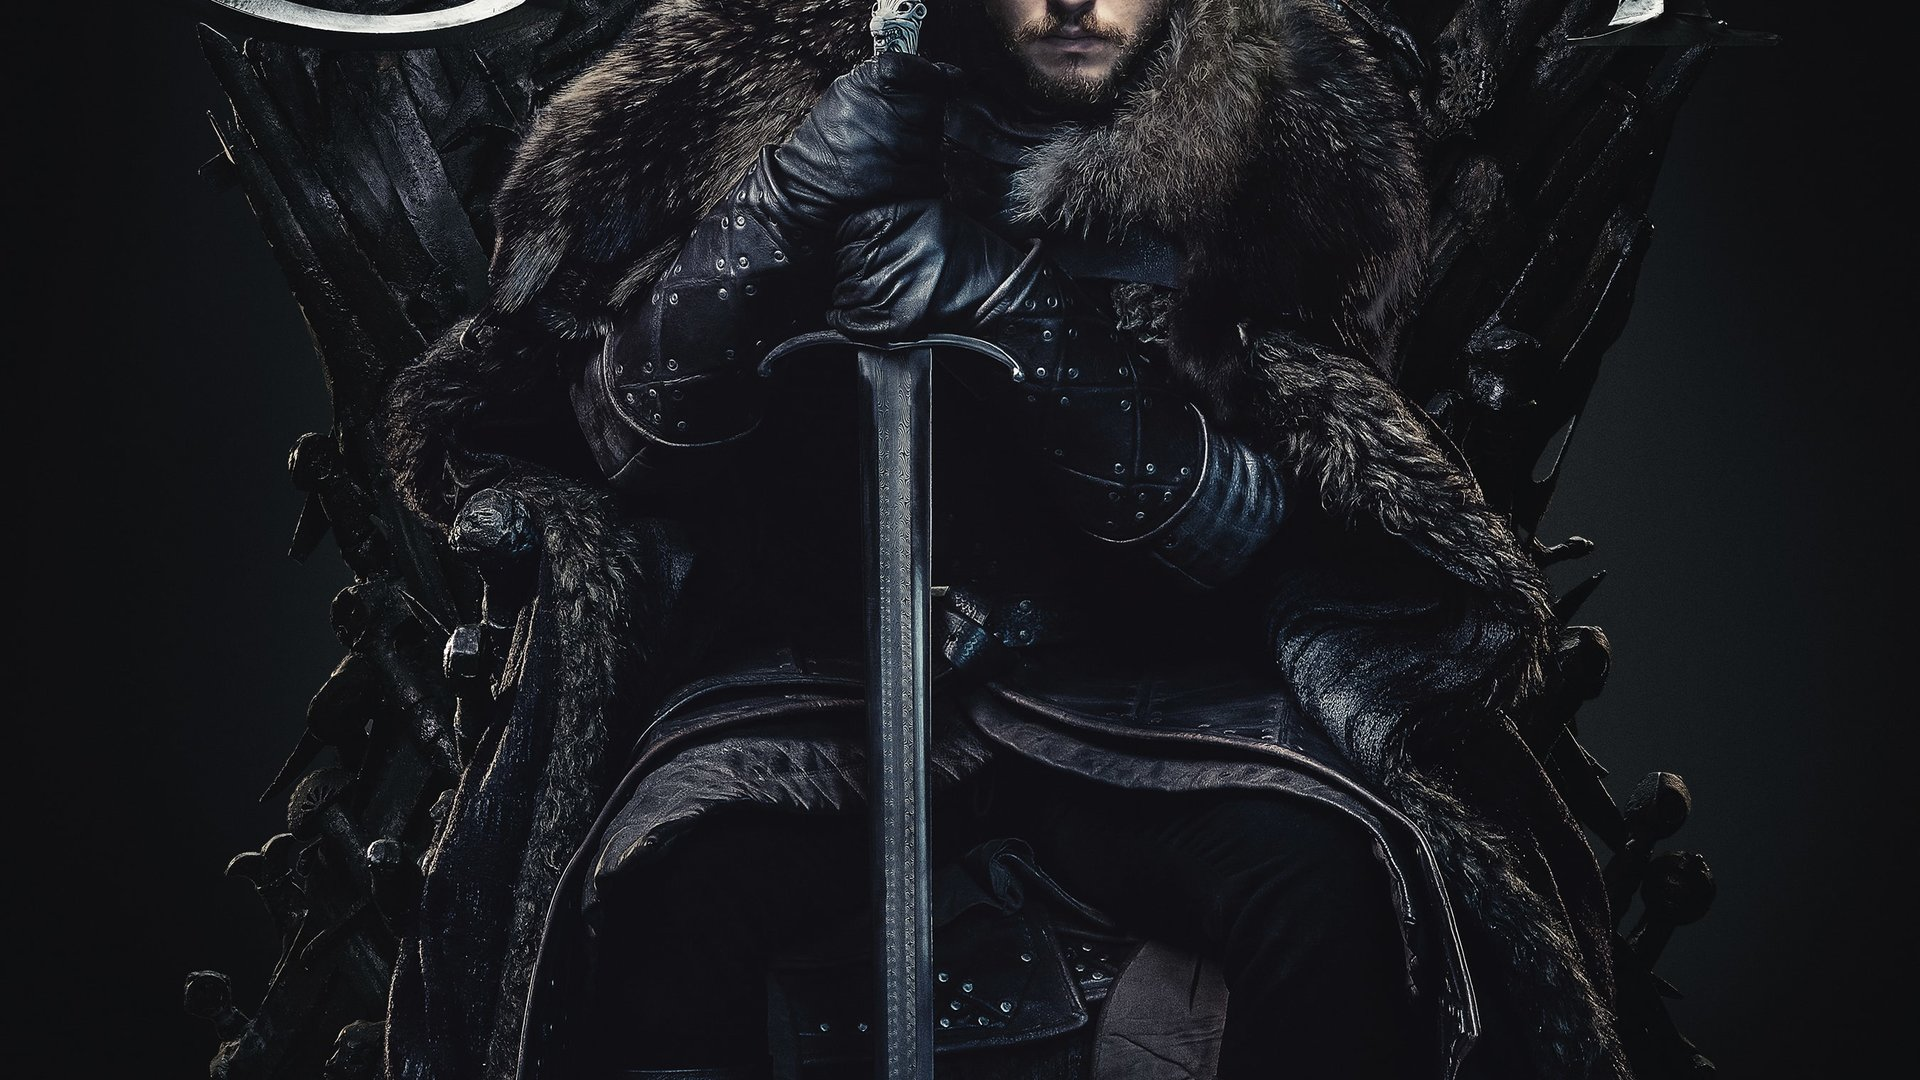 Der Winter Naht Game Of Thrones Häuser Und Ihre Mottos